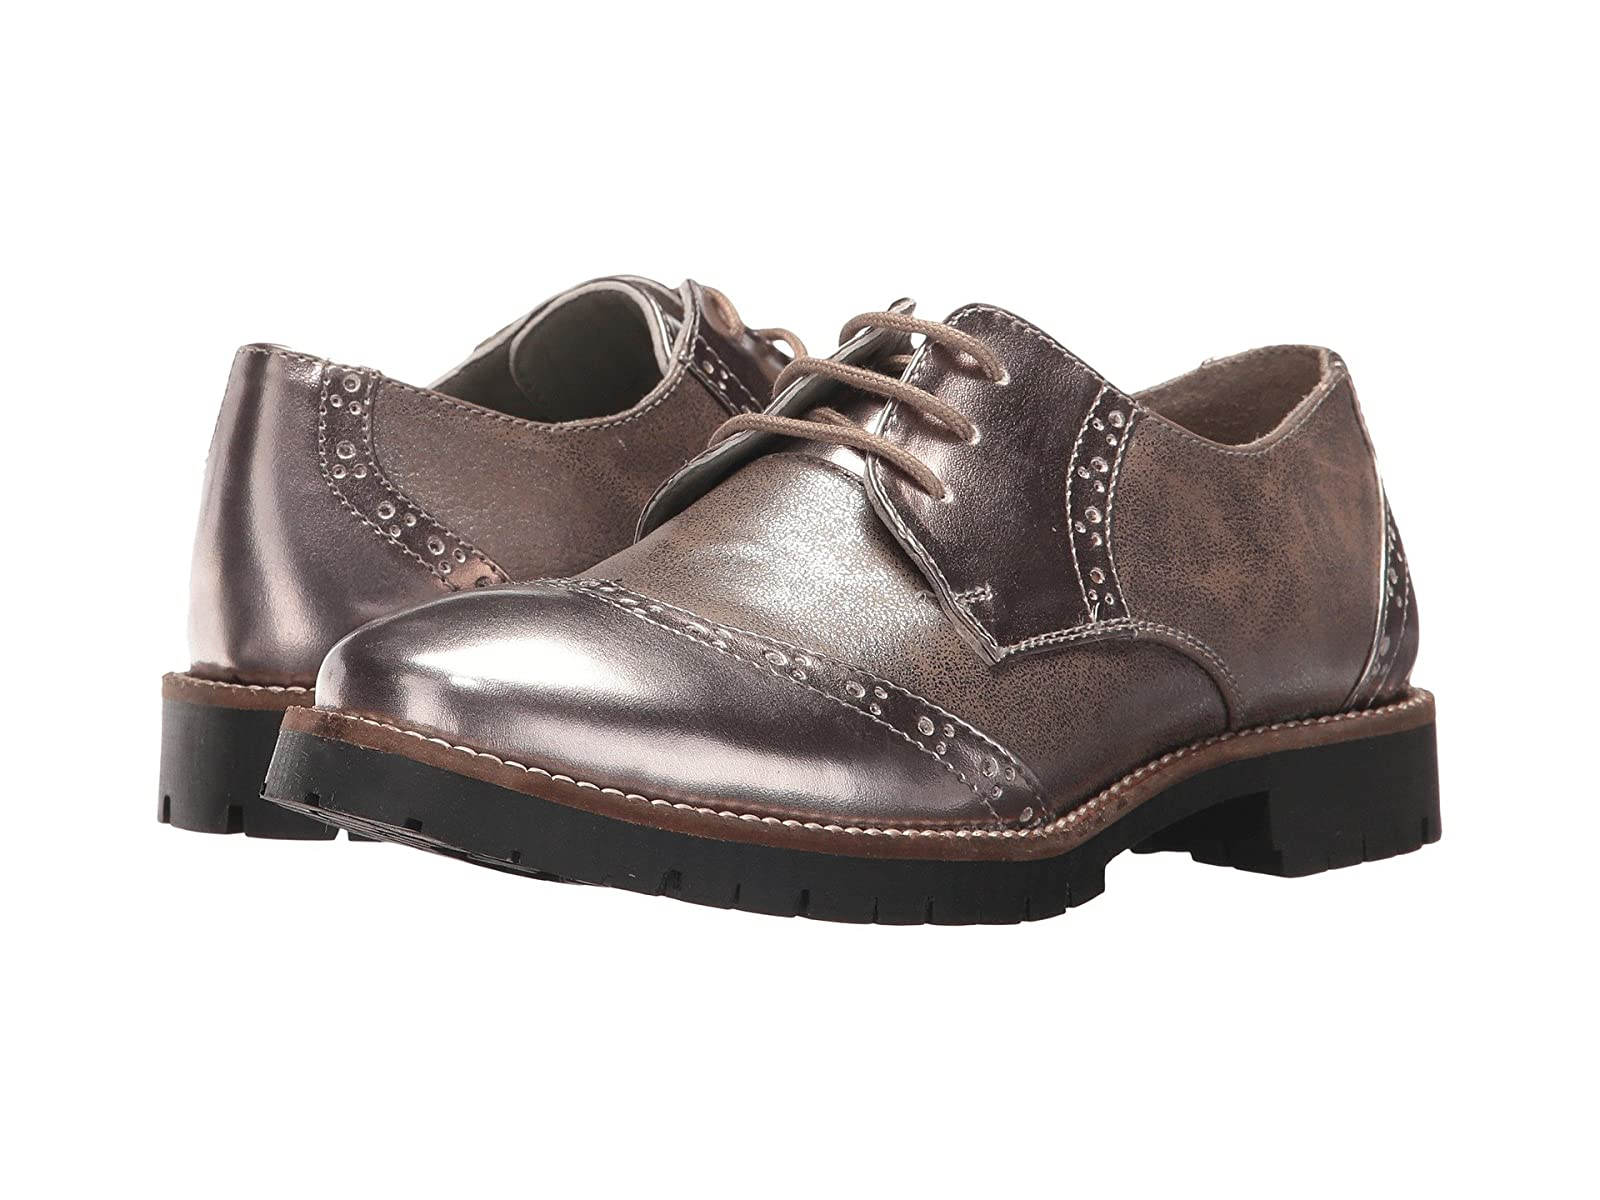 Pazitos The Oxford-Wing Tip PU (Toddler/Little Kid/Big Kid)Cheap and distinctive eye-catching shoes